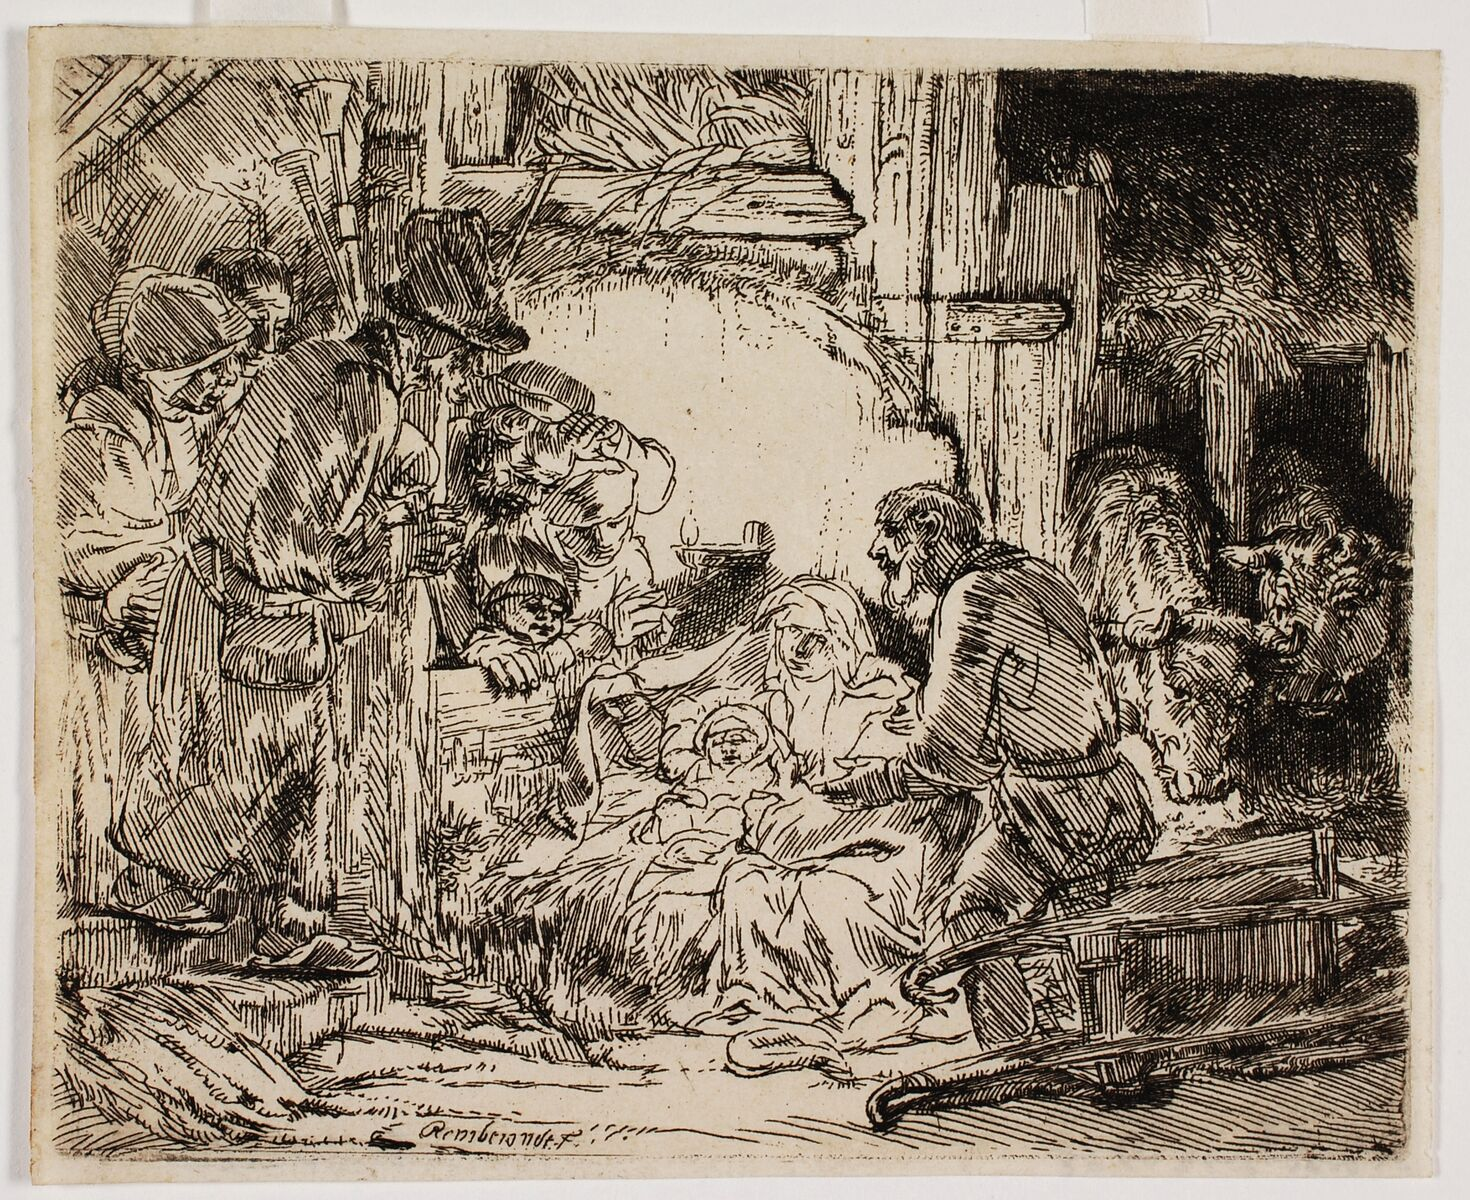 Rembrandt Exhibition Shell : New german exhibition explores rembrandt s career daily mail online